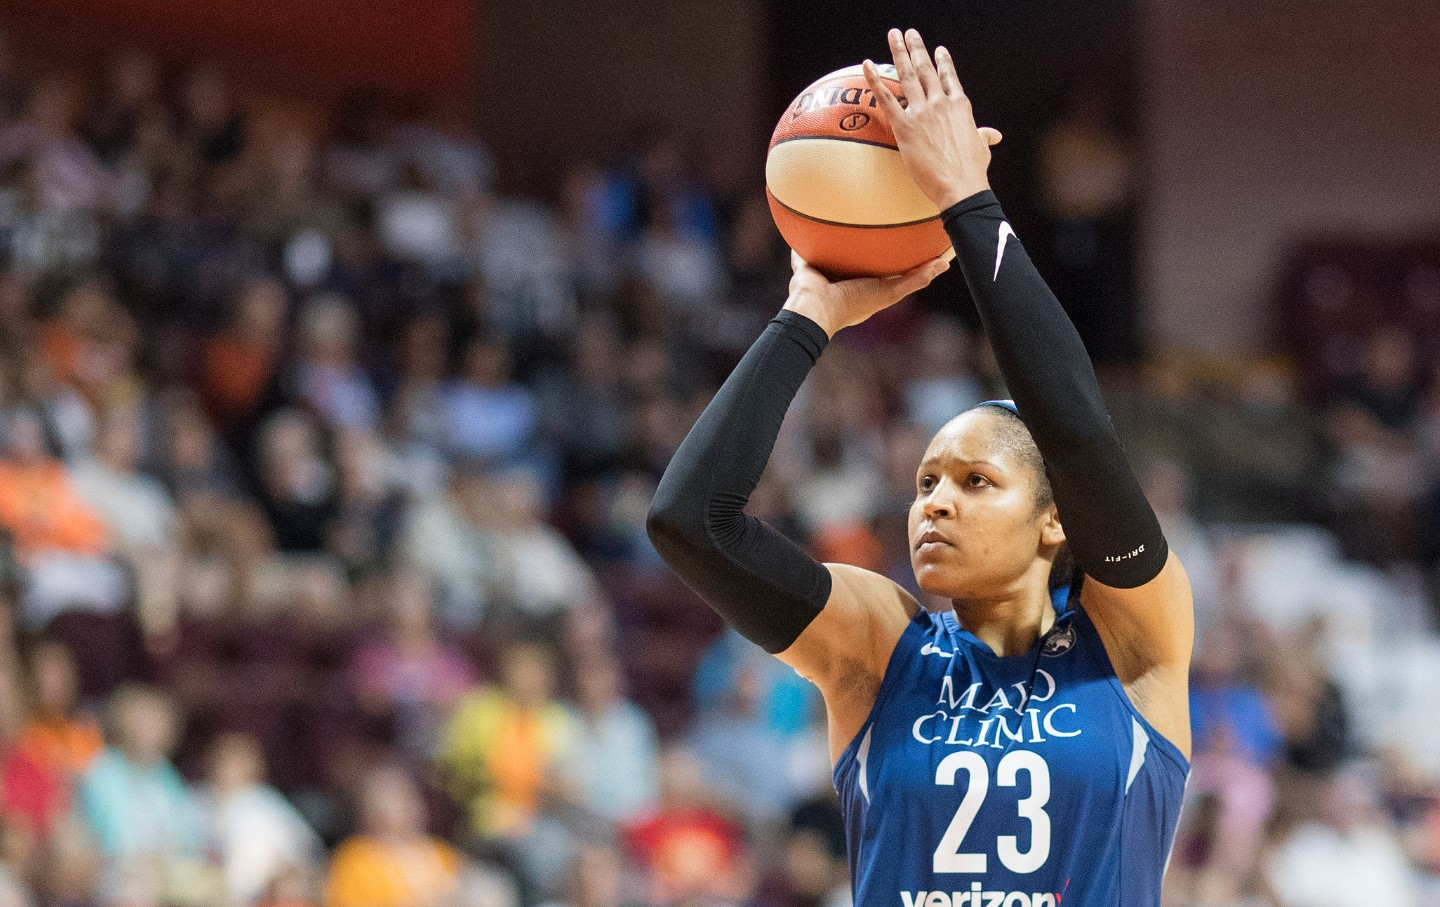 maya moore wnba jonathan irons saves corbis clayton connecticut tim august getty